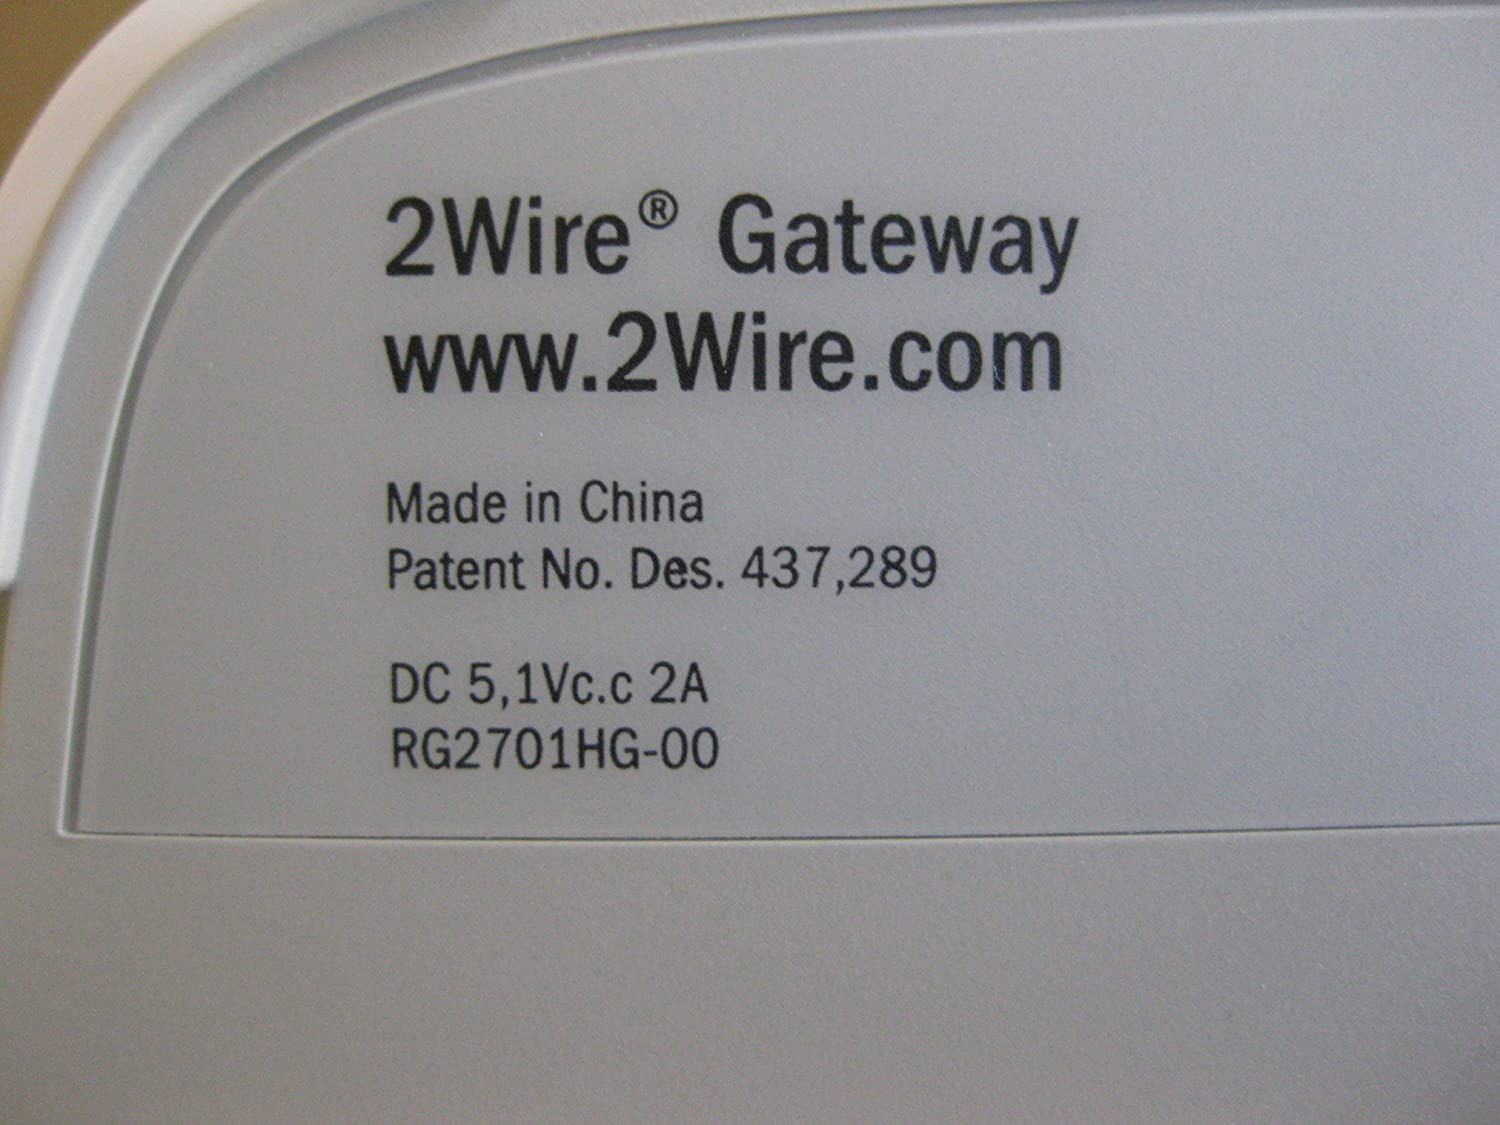 AT&T 2701HG-B 2Wire Wireless Gateway DSL Router Modem: Amazon.ca ...